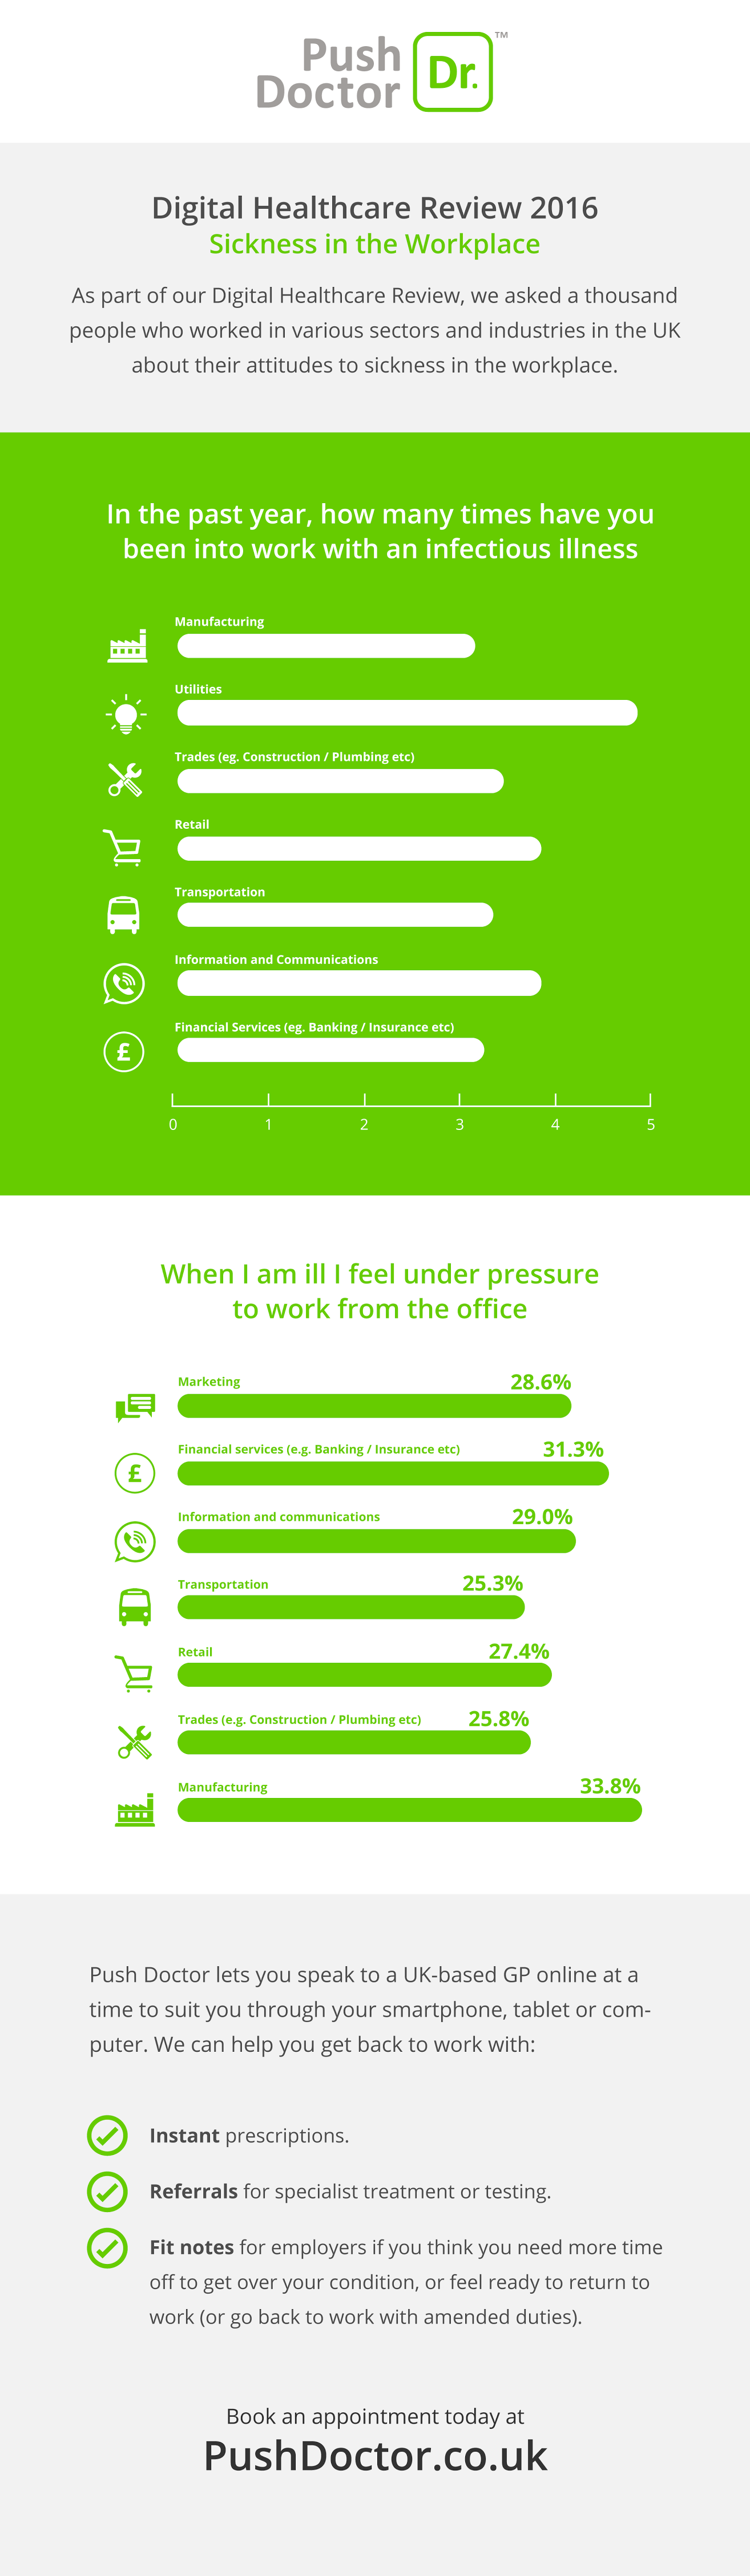 DHR_-_Sickness_in_the_Workplace_Infographic.png